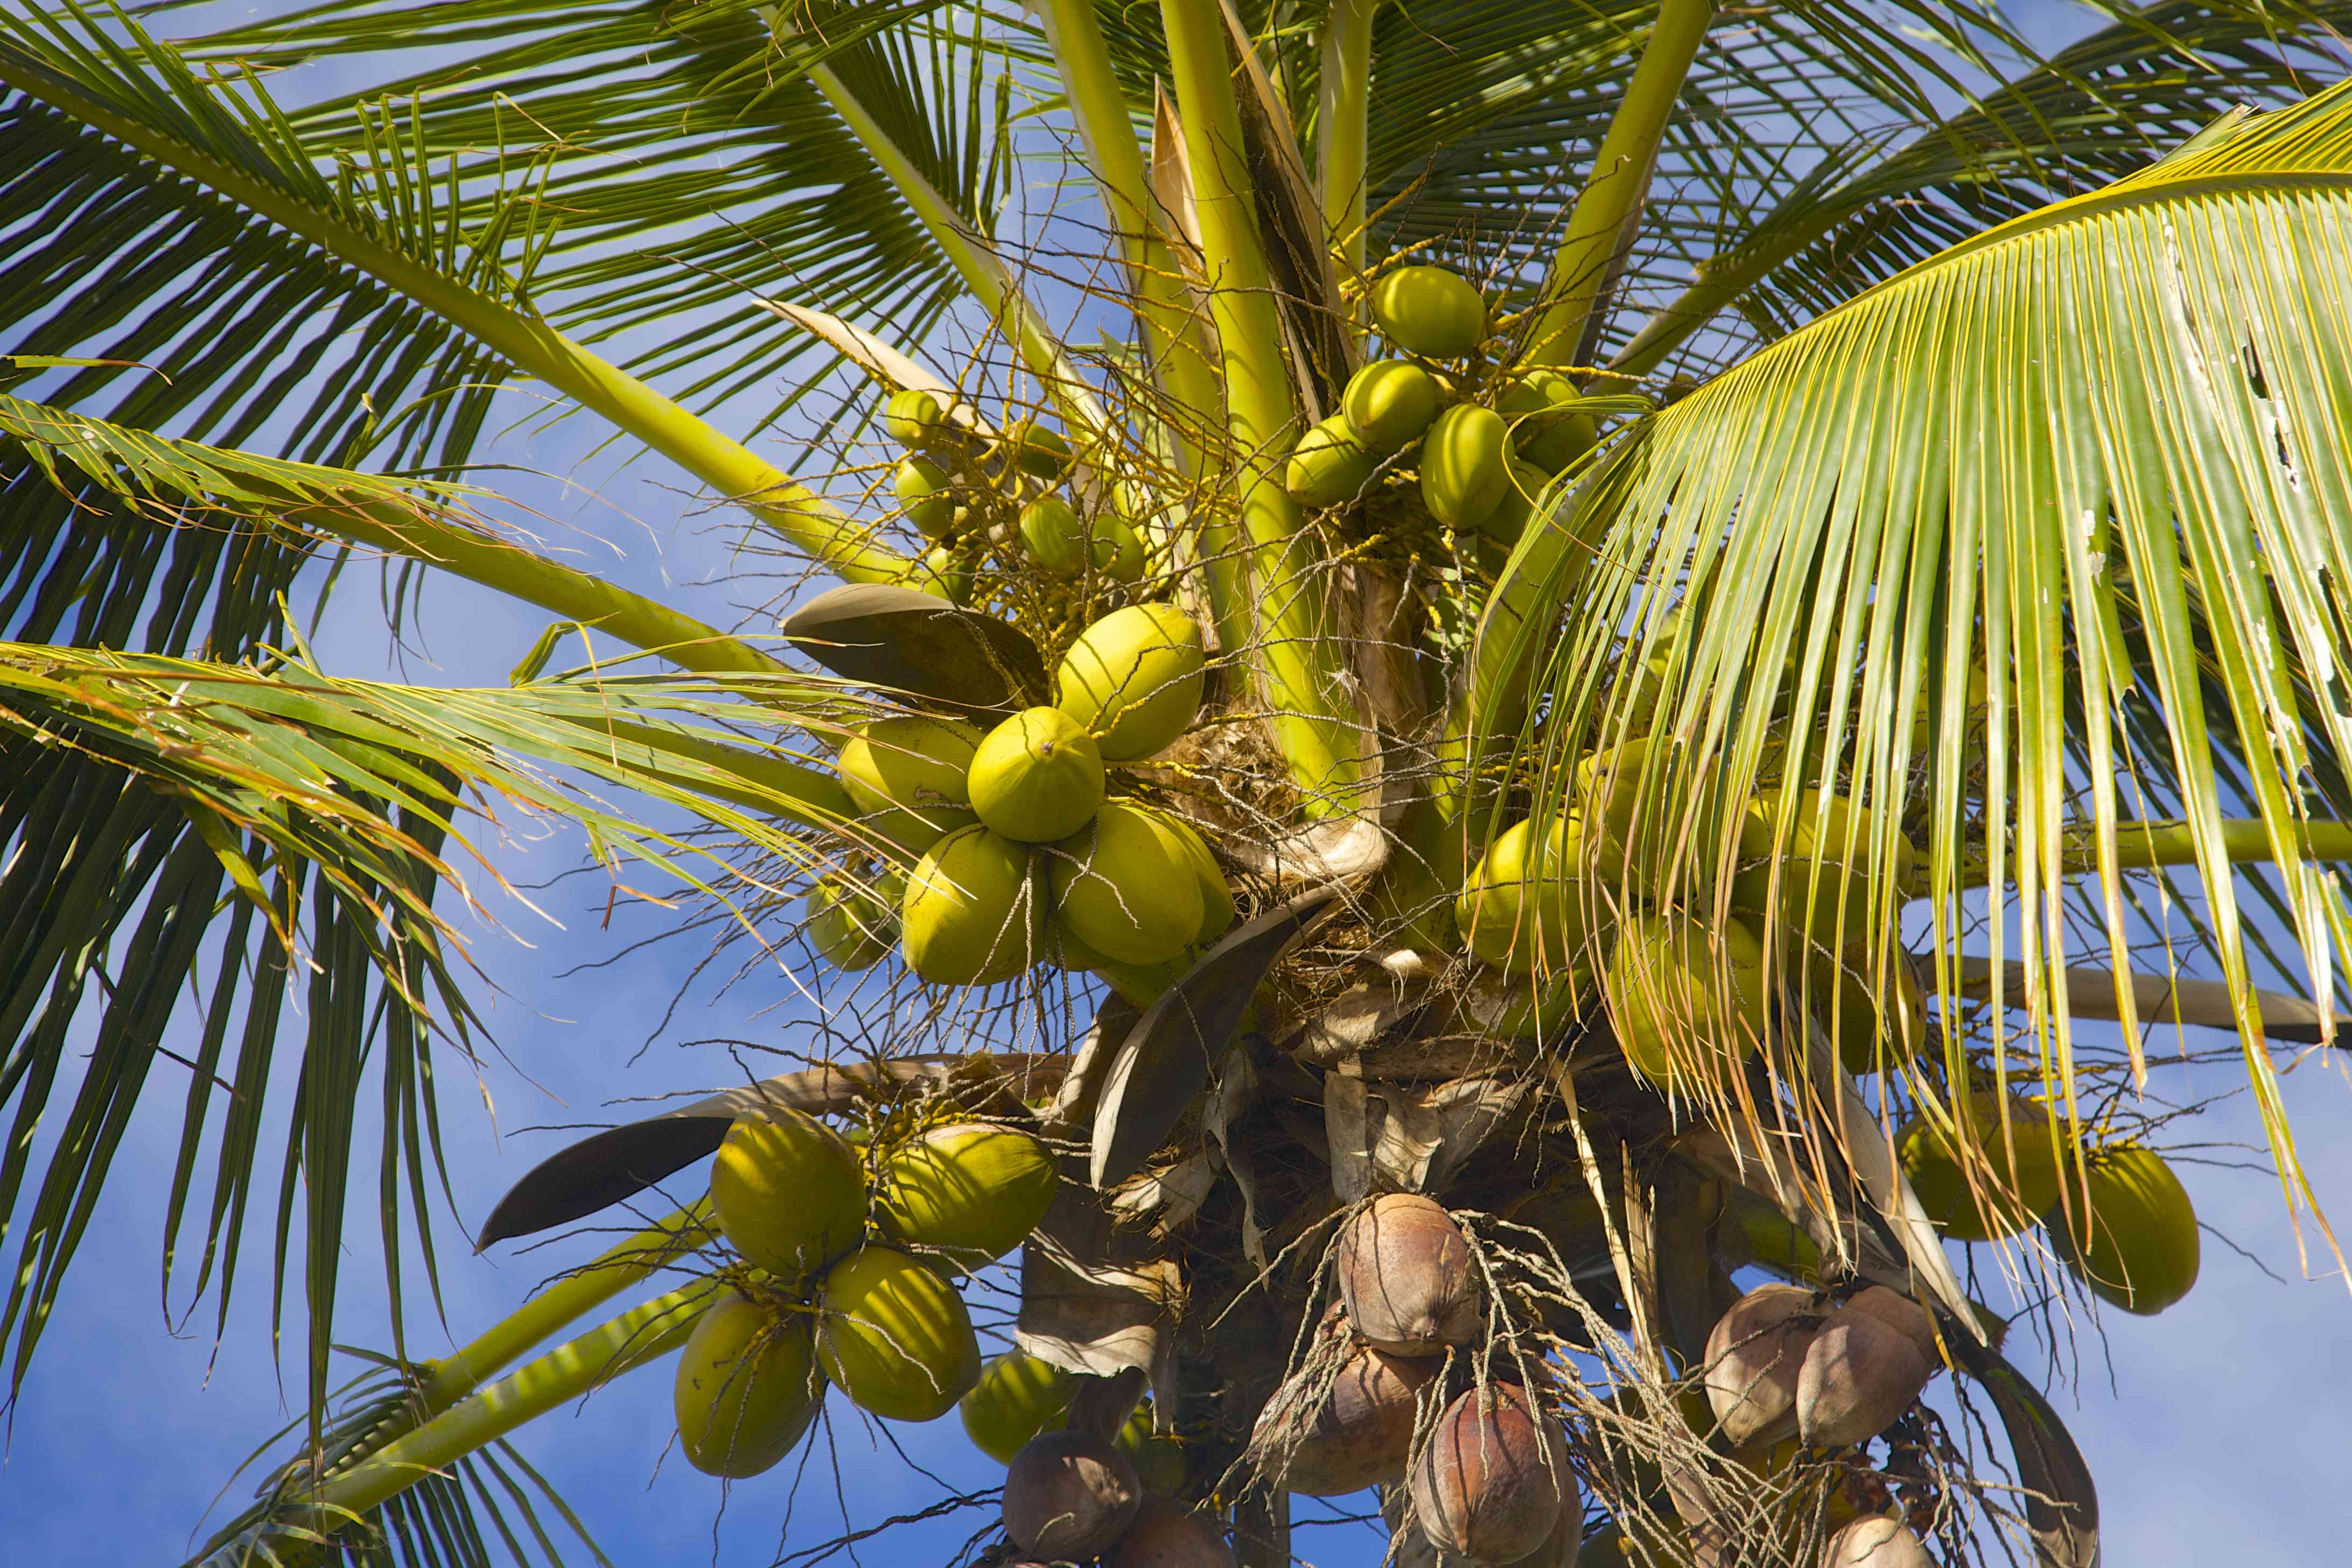 Coconuts hanging on coconut palm tree in Hawaii